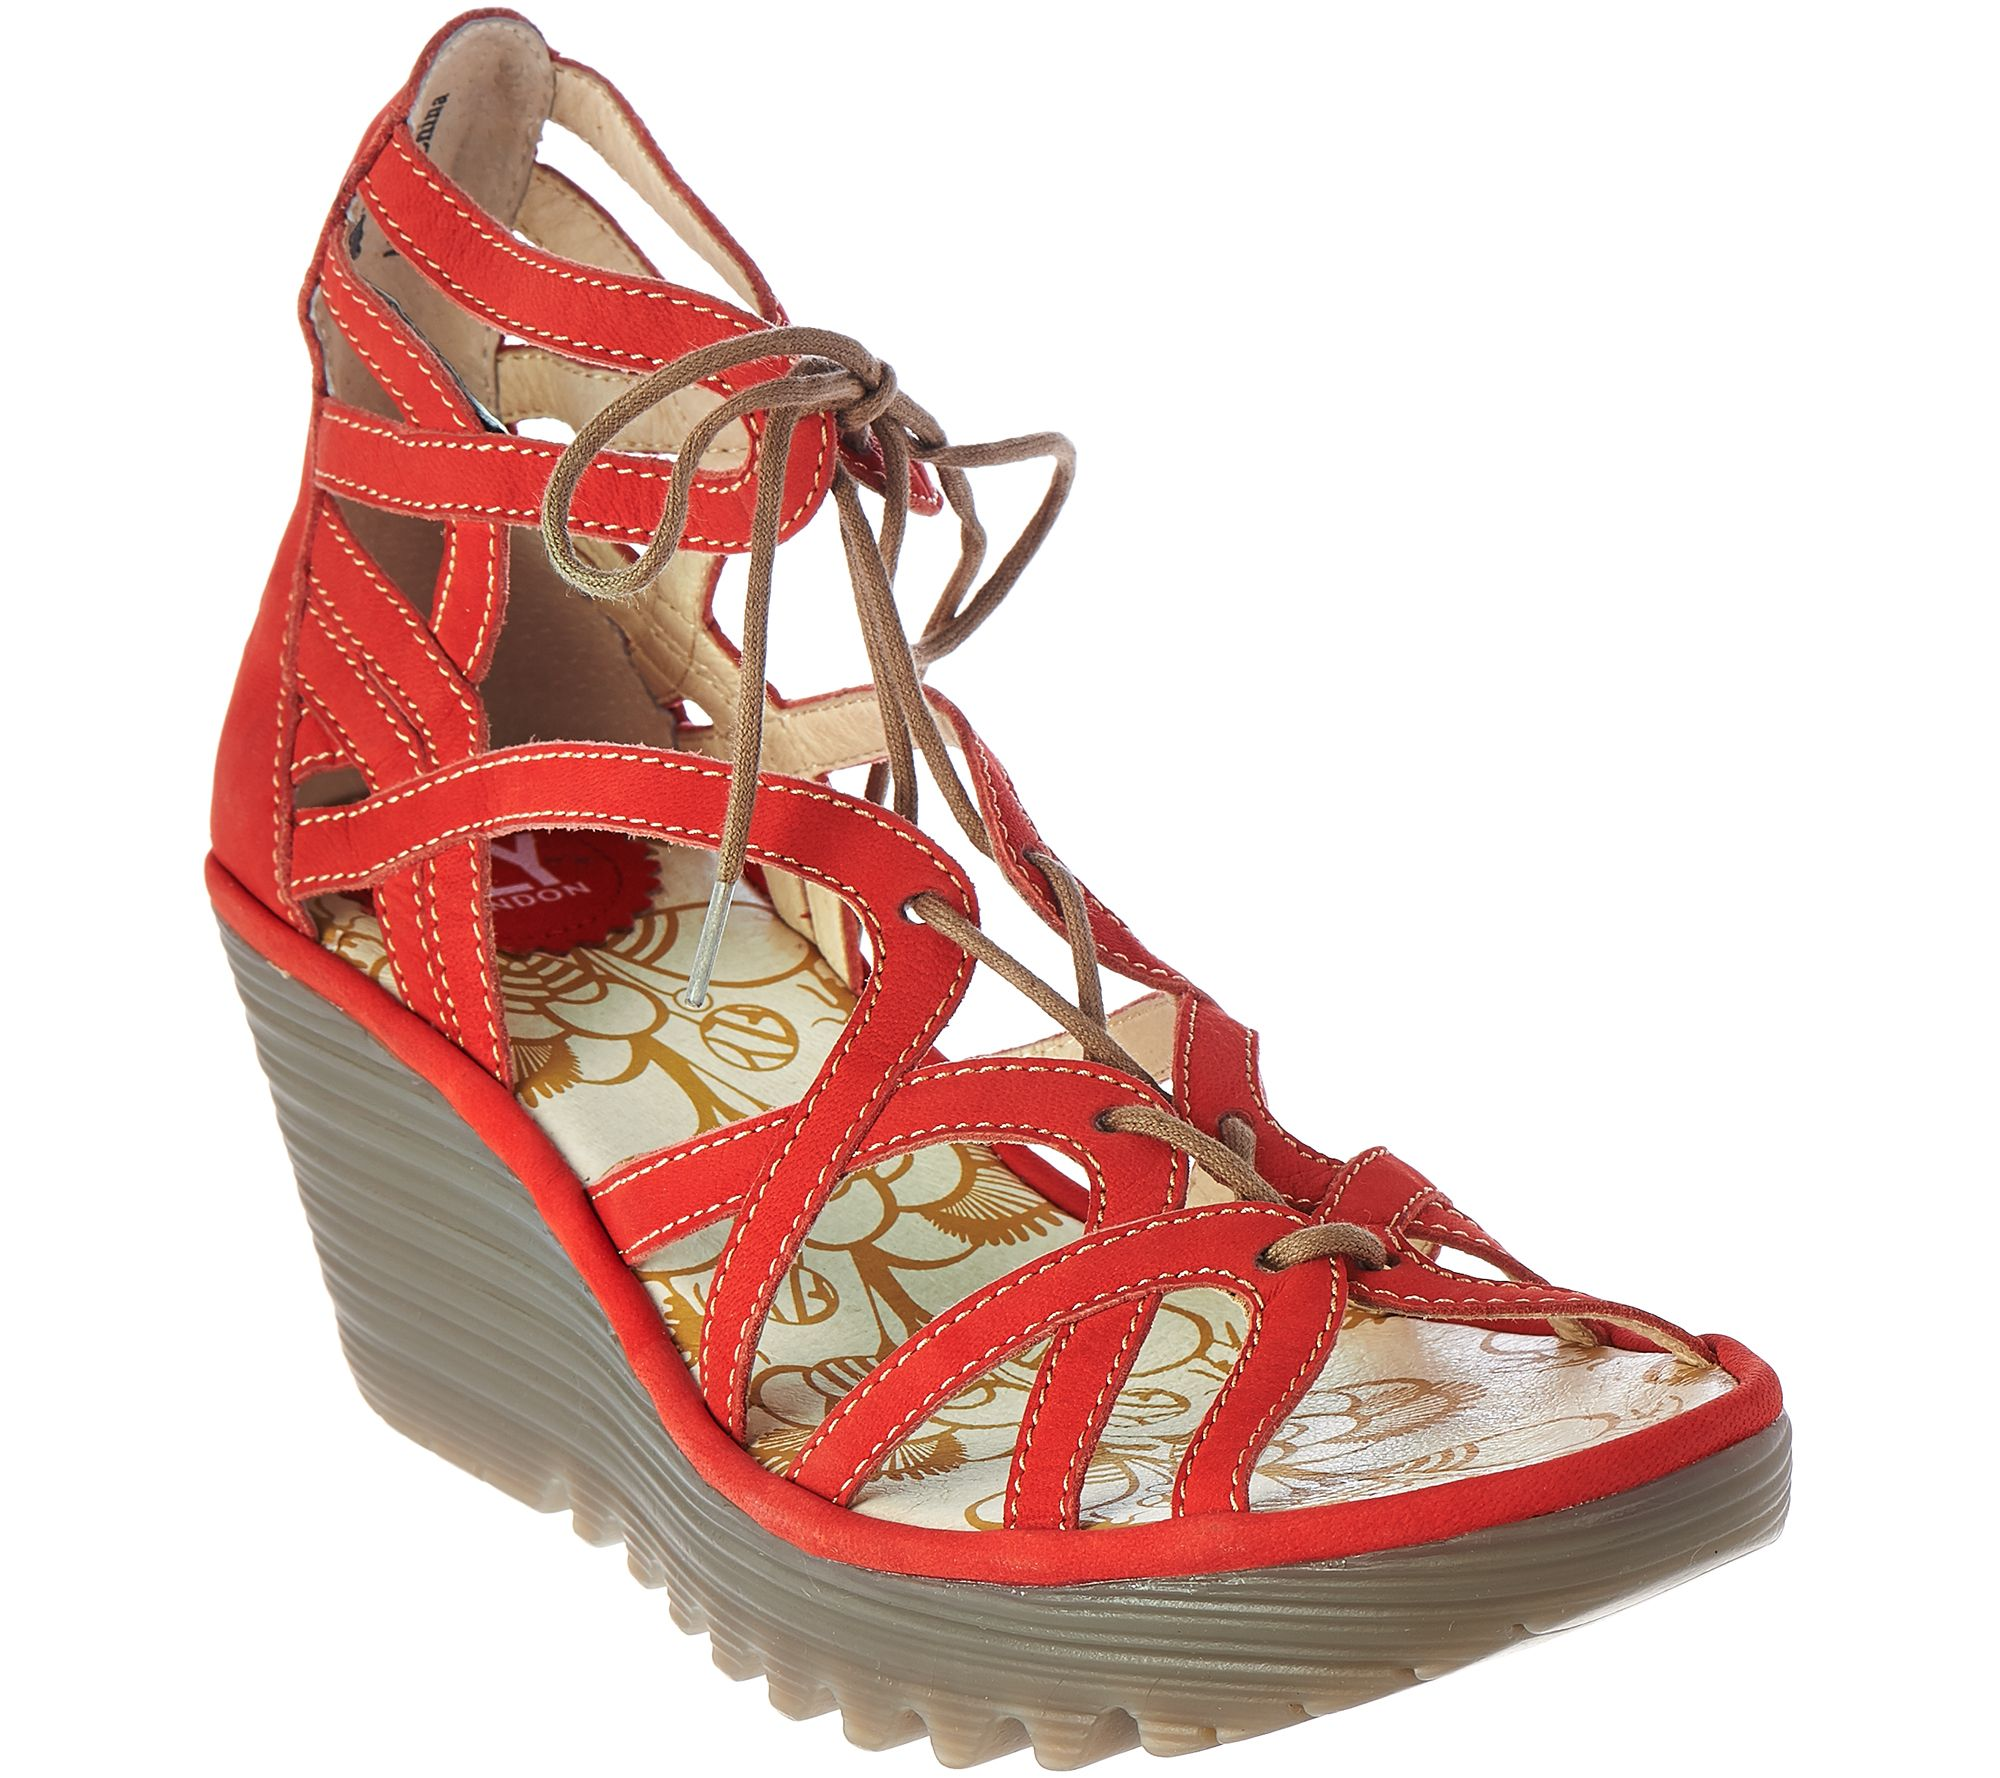 db07a4f3481 FLY London Leather Lace-up Wedge Sandals - Yuke - Page 1 — QVC.com